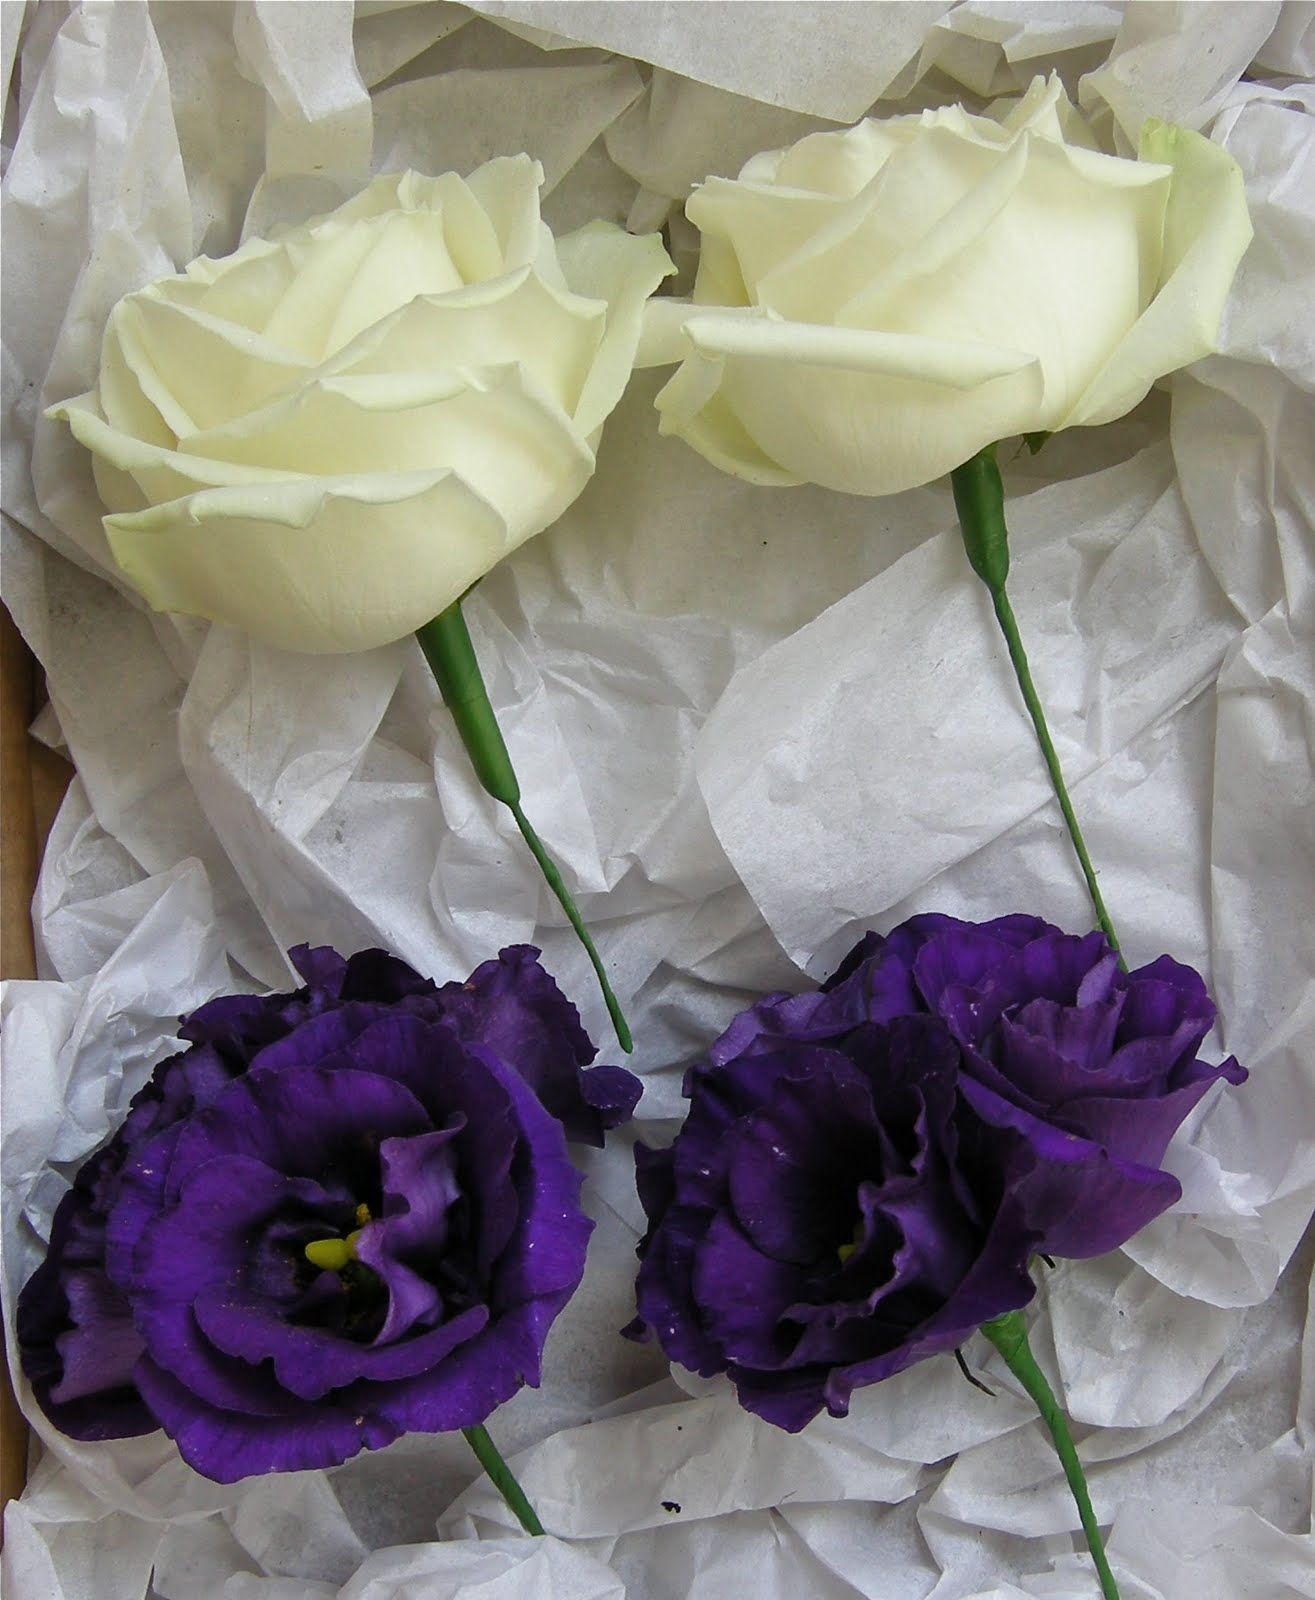 Wedding Flowers Blog: Alannah's Purple Wedding Flowers